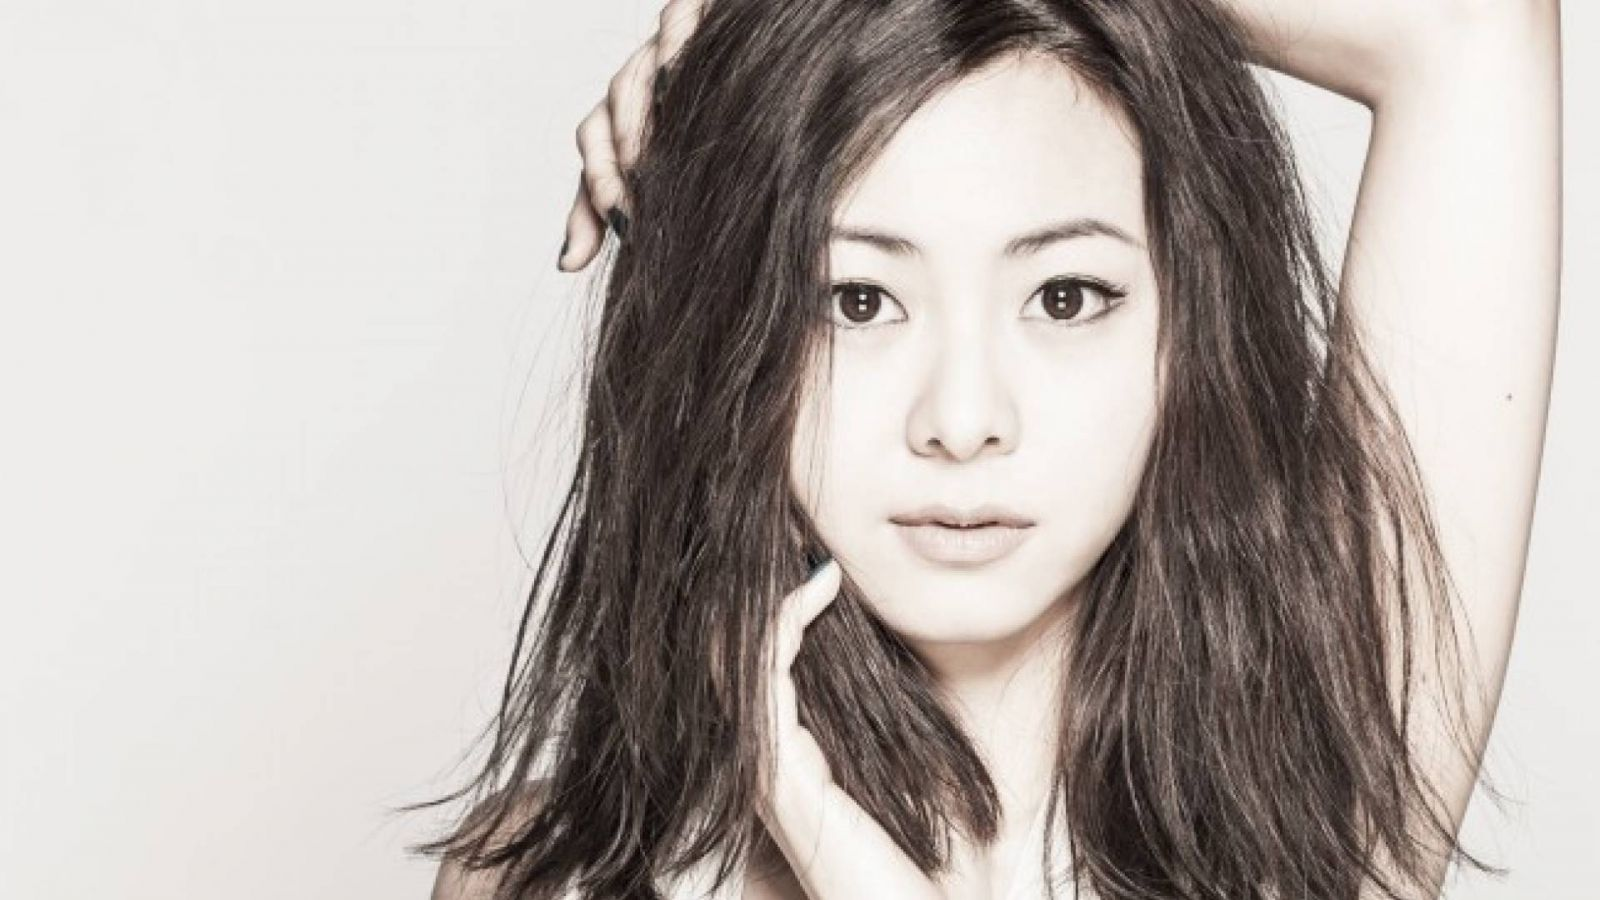 Kuraki Mai © Kuraki Mai / NORTHERN MUSIC